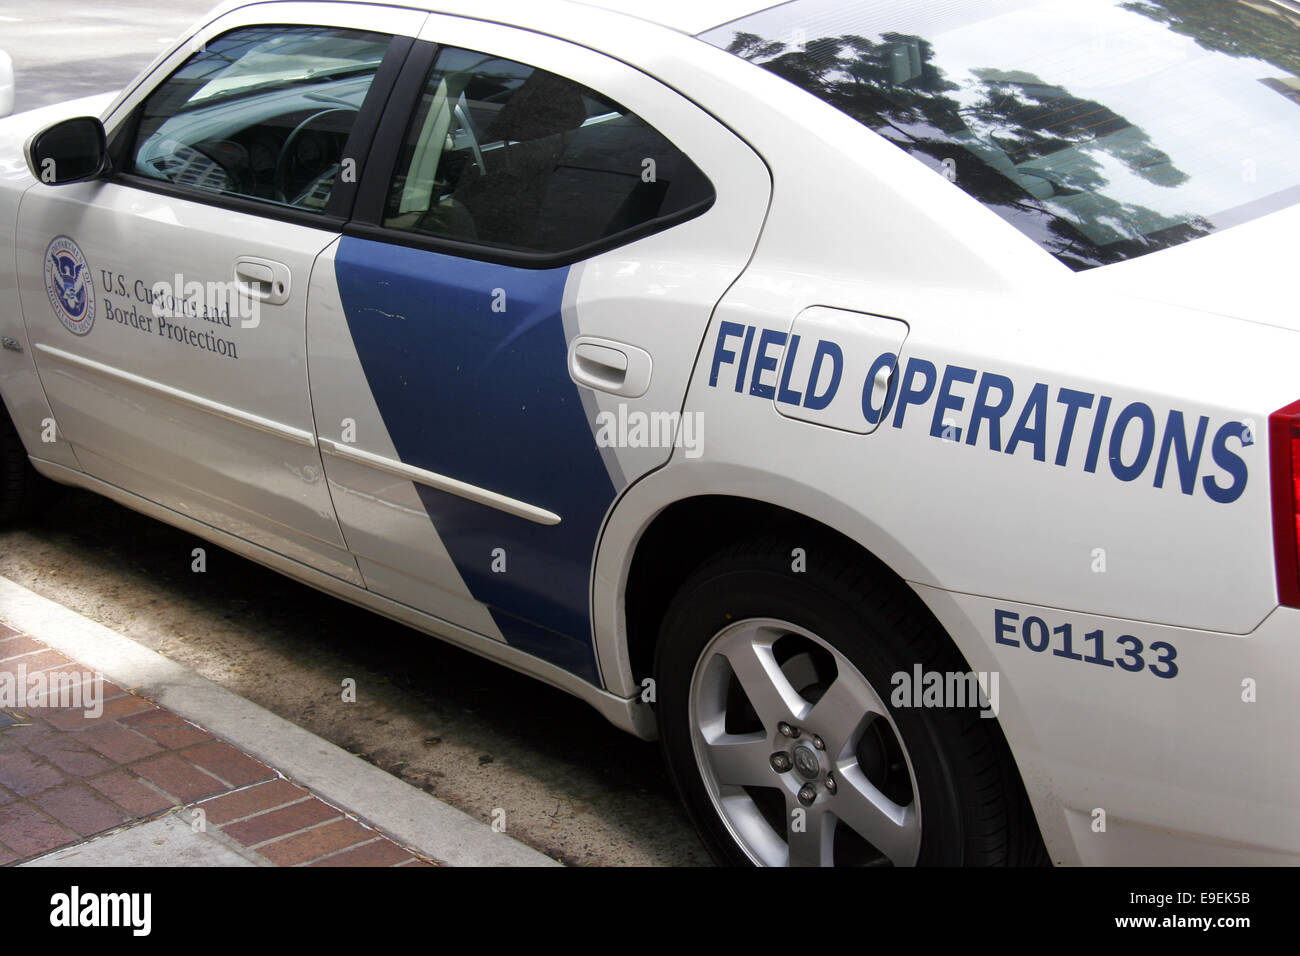 US Customs and Border Protection Department of Homeland Security field operations vehicle. - Stock Image